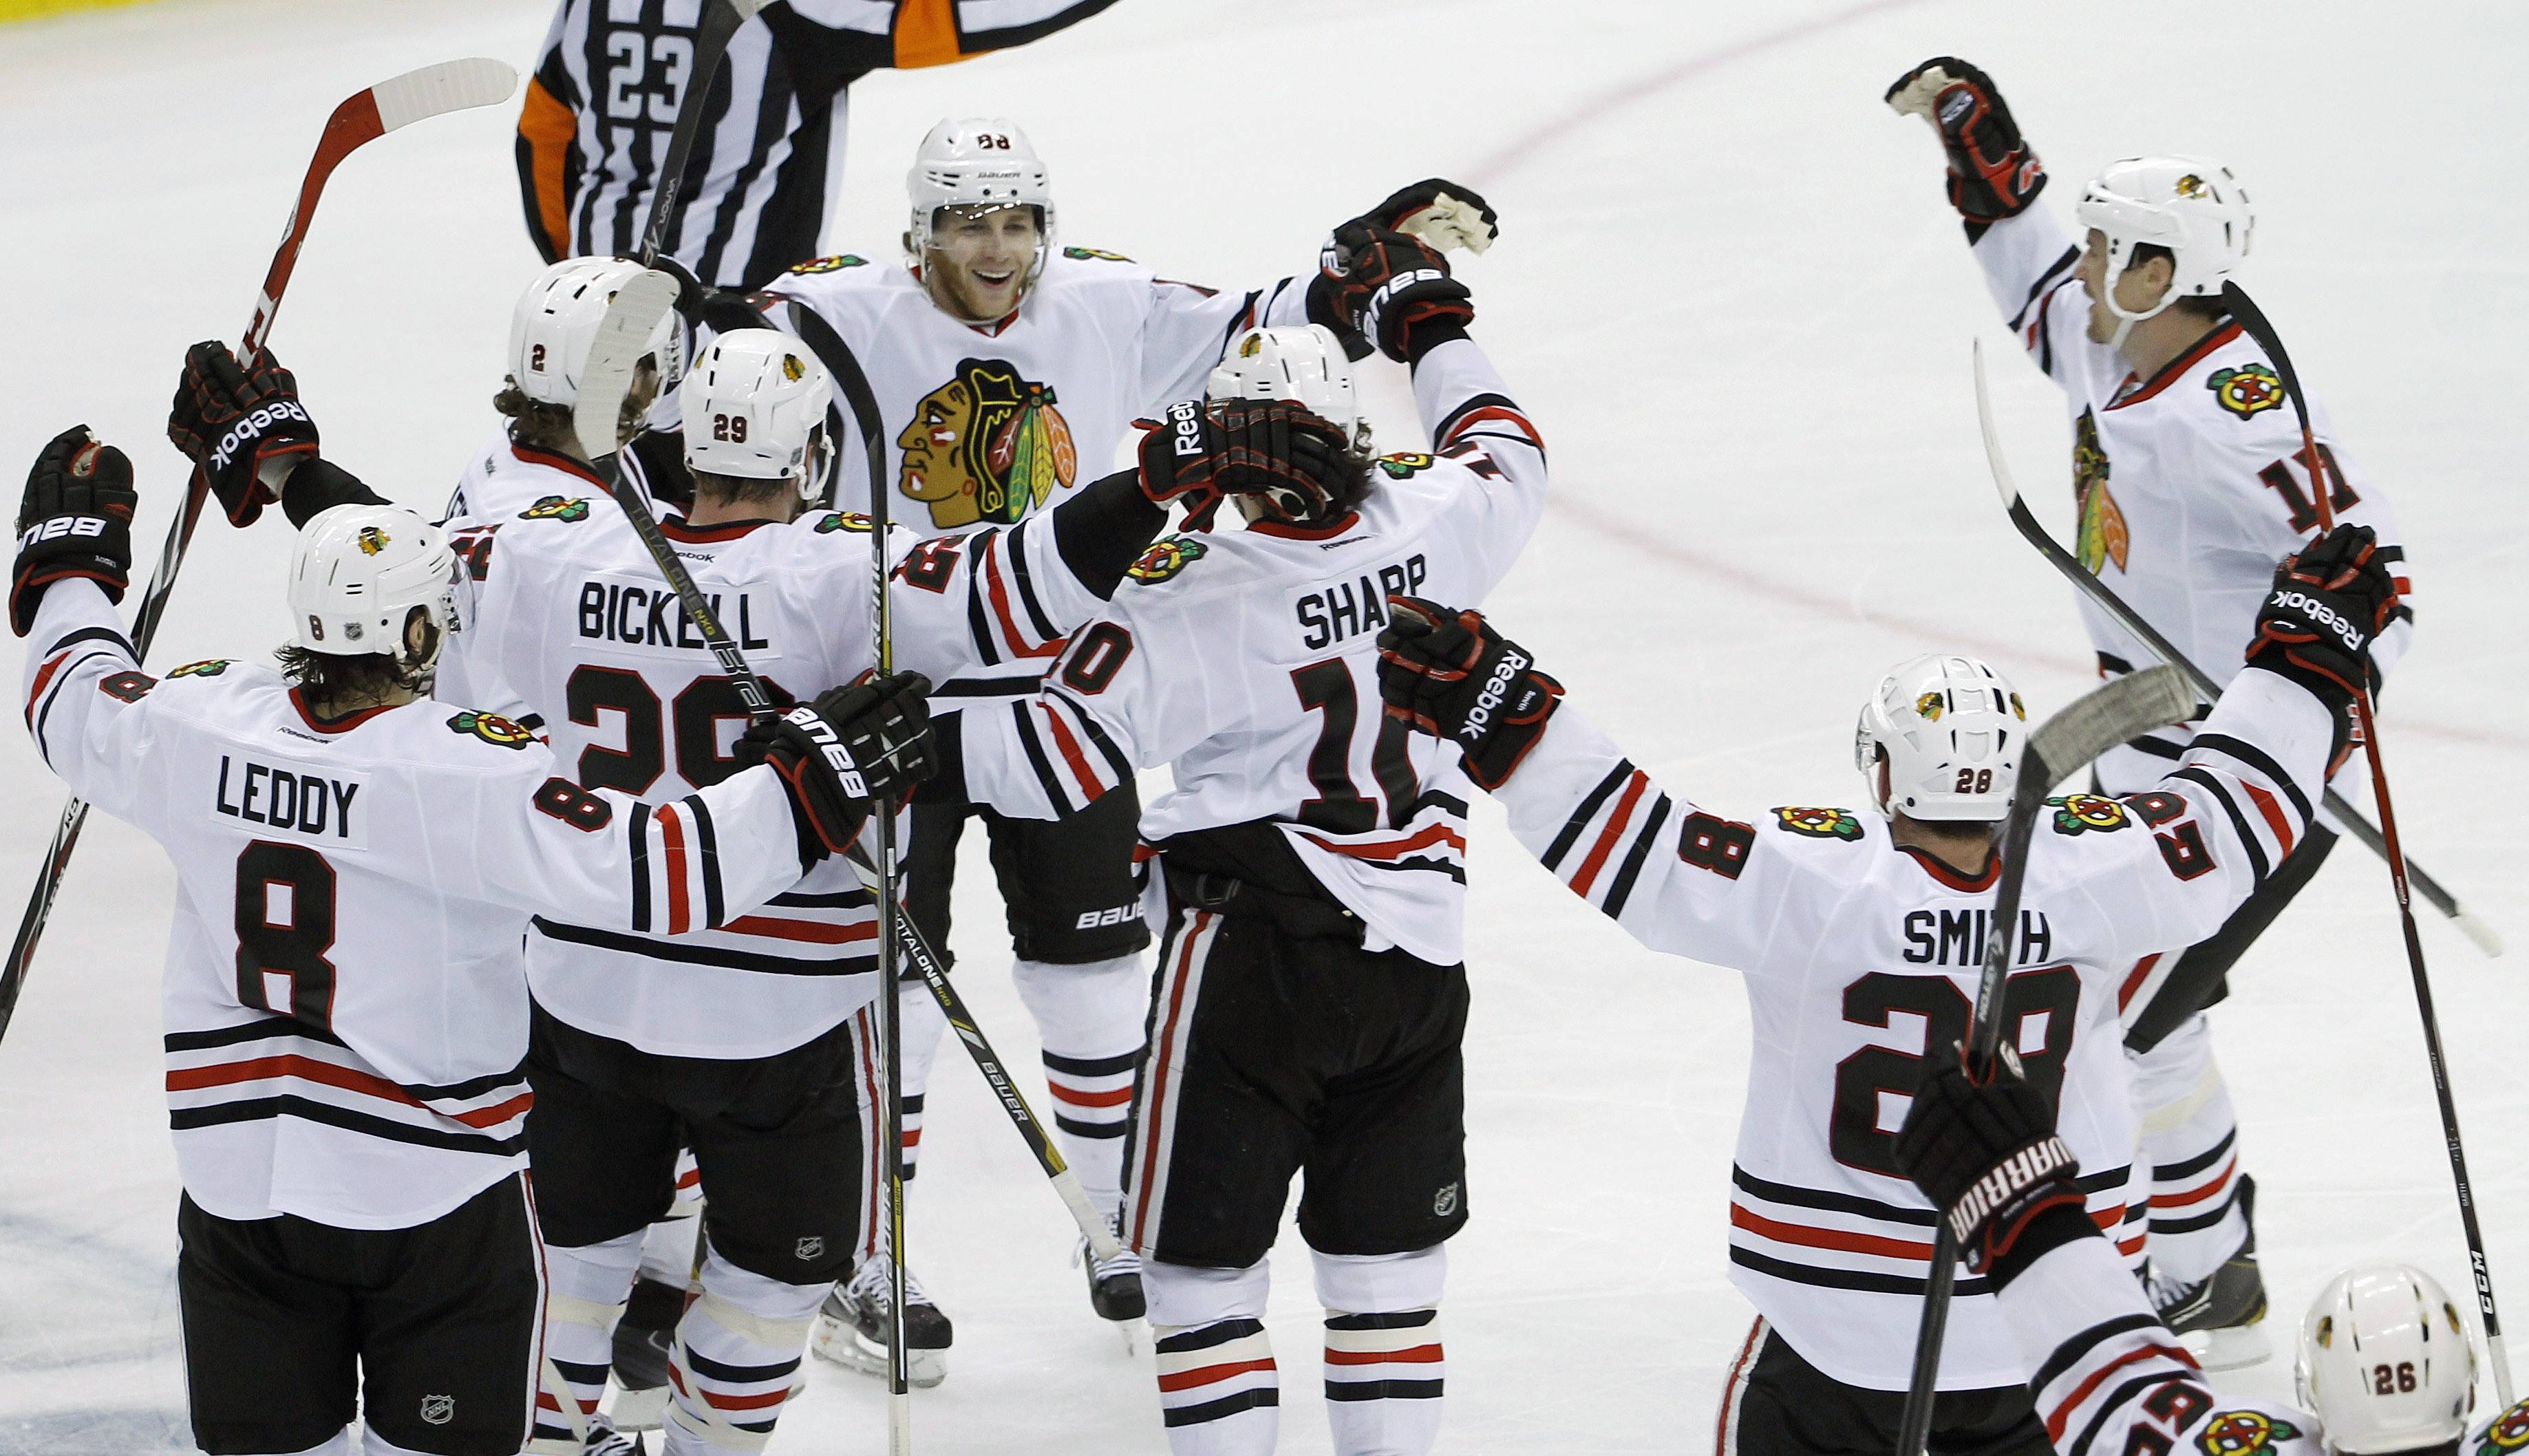 Teamamtes swarm Blackhawks right wing Patrick Kane, center, Tuesday to celebrate his game-winning goal off Minnesota Wild goalie Ilya Bryzgalov to beat the Wild 2-1 during overtime of Game 6 in St. Paul, Minn.